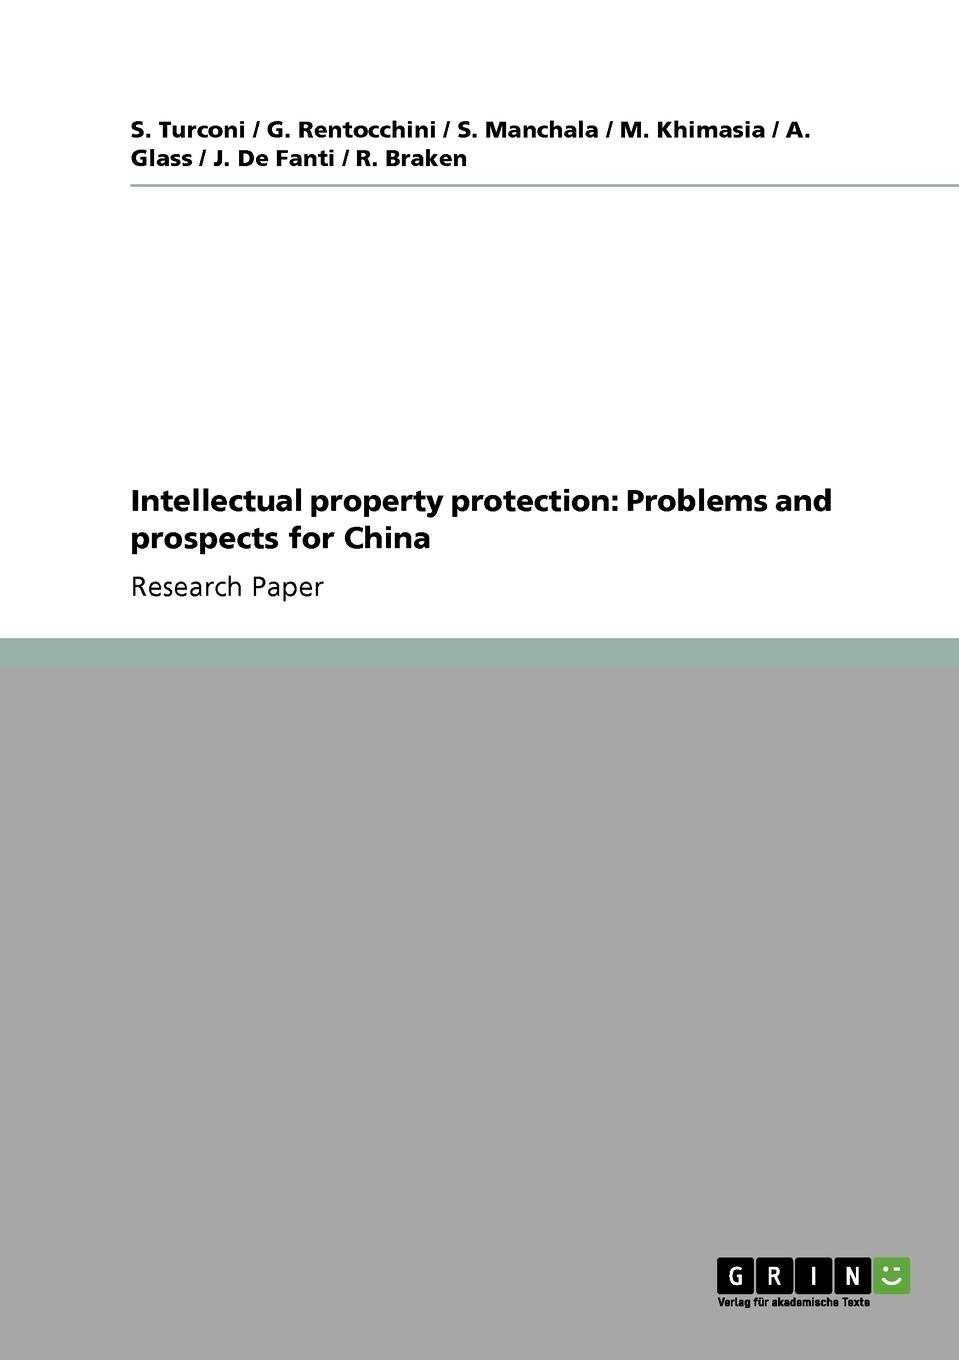 Intellectual property protection. Problems and prospects for China